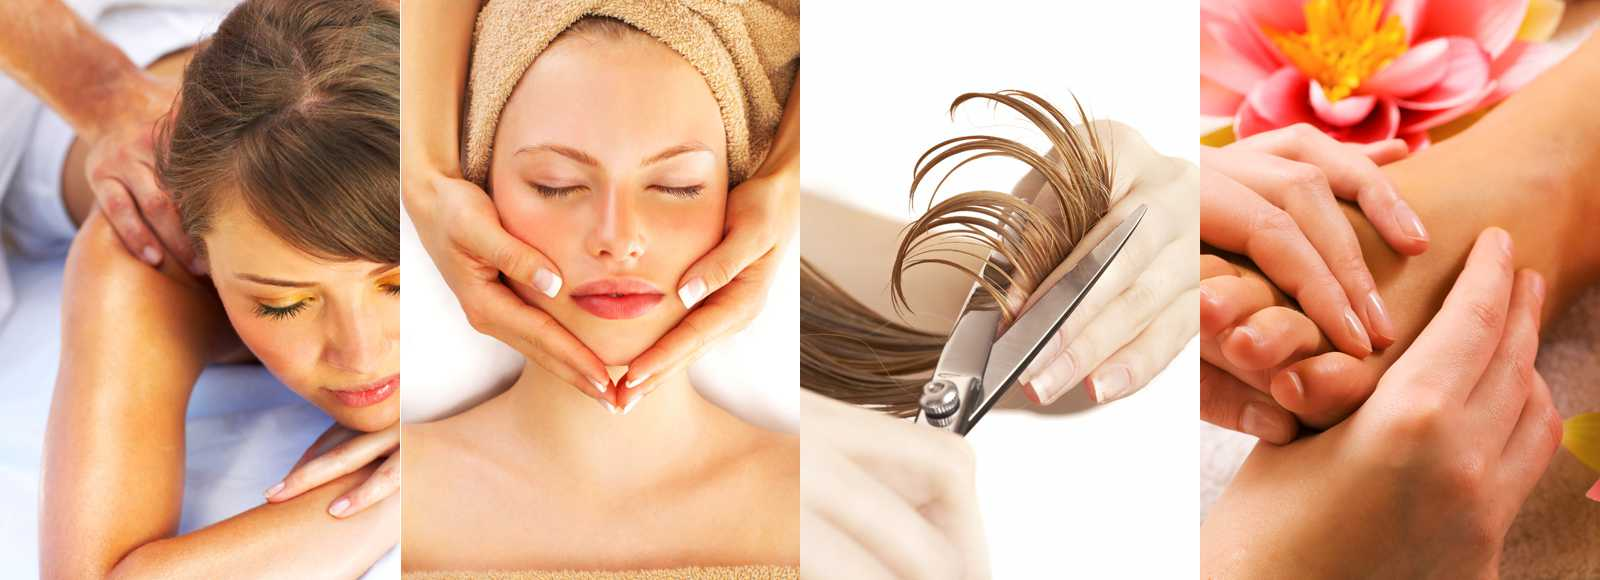 Spa Services offered by MG's GRAND Day Spa in Greenville, SC